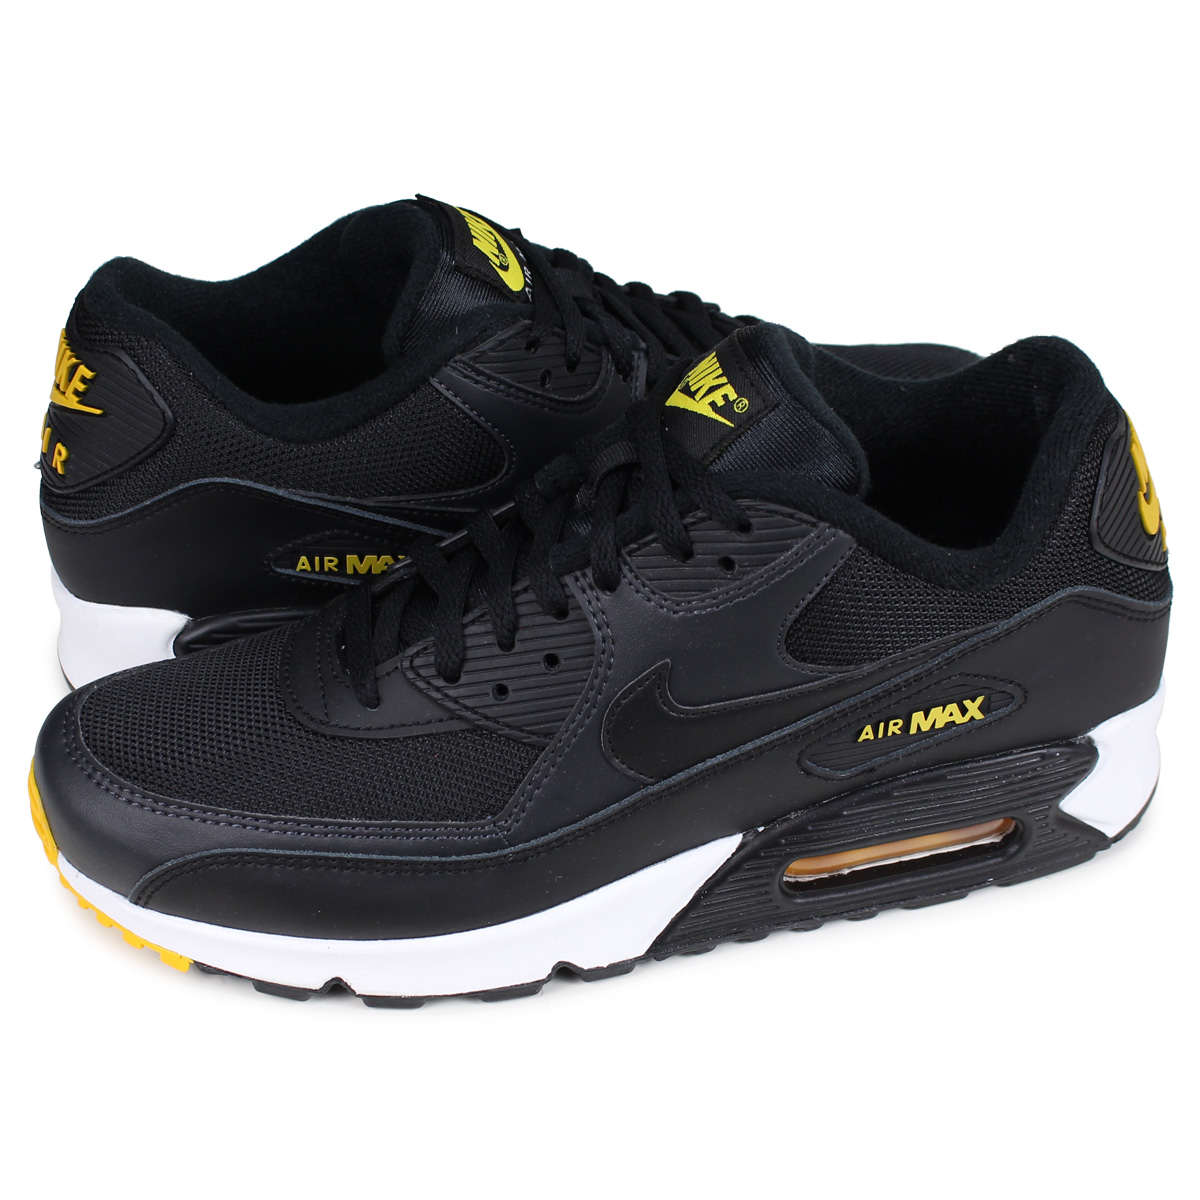 93ffa115f684d Categories. « All Categories · Shoes · Men's Shoes · Sneakers · Nike NIKE  Air Max 90 essential sneakers men AIR MAX 90 ESSENTIAL black ...